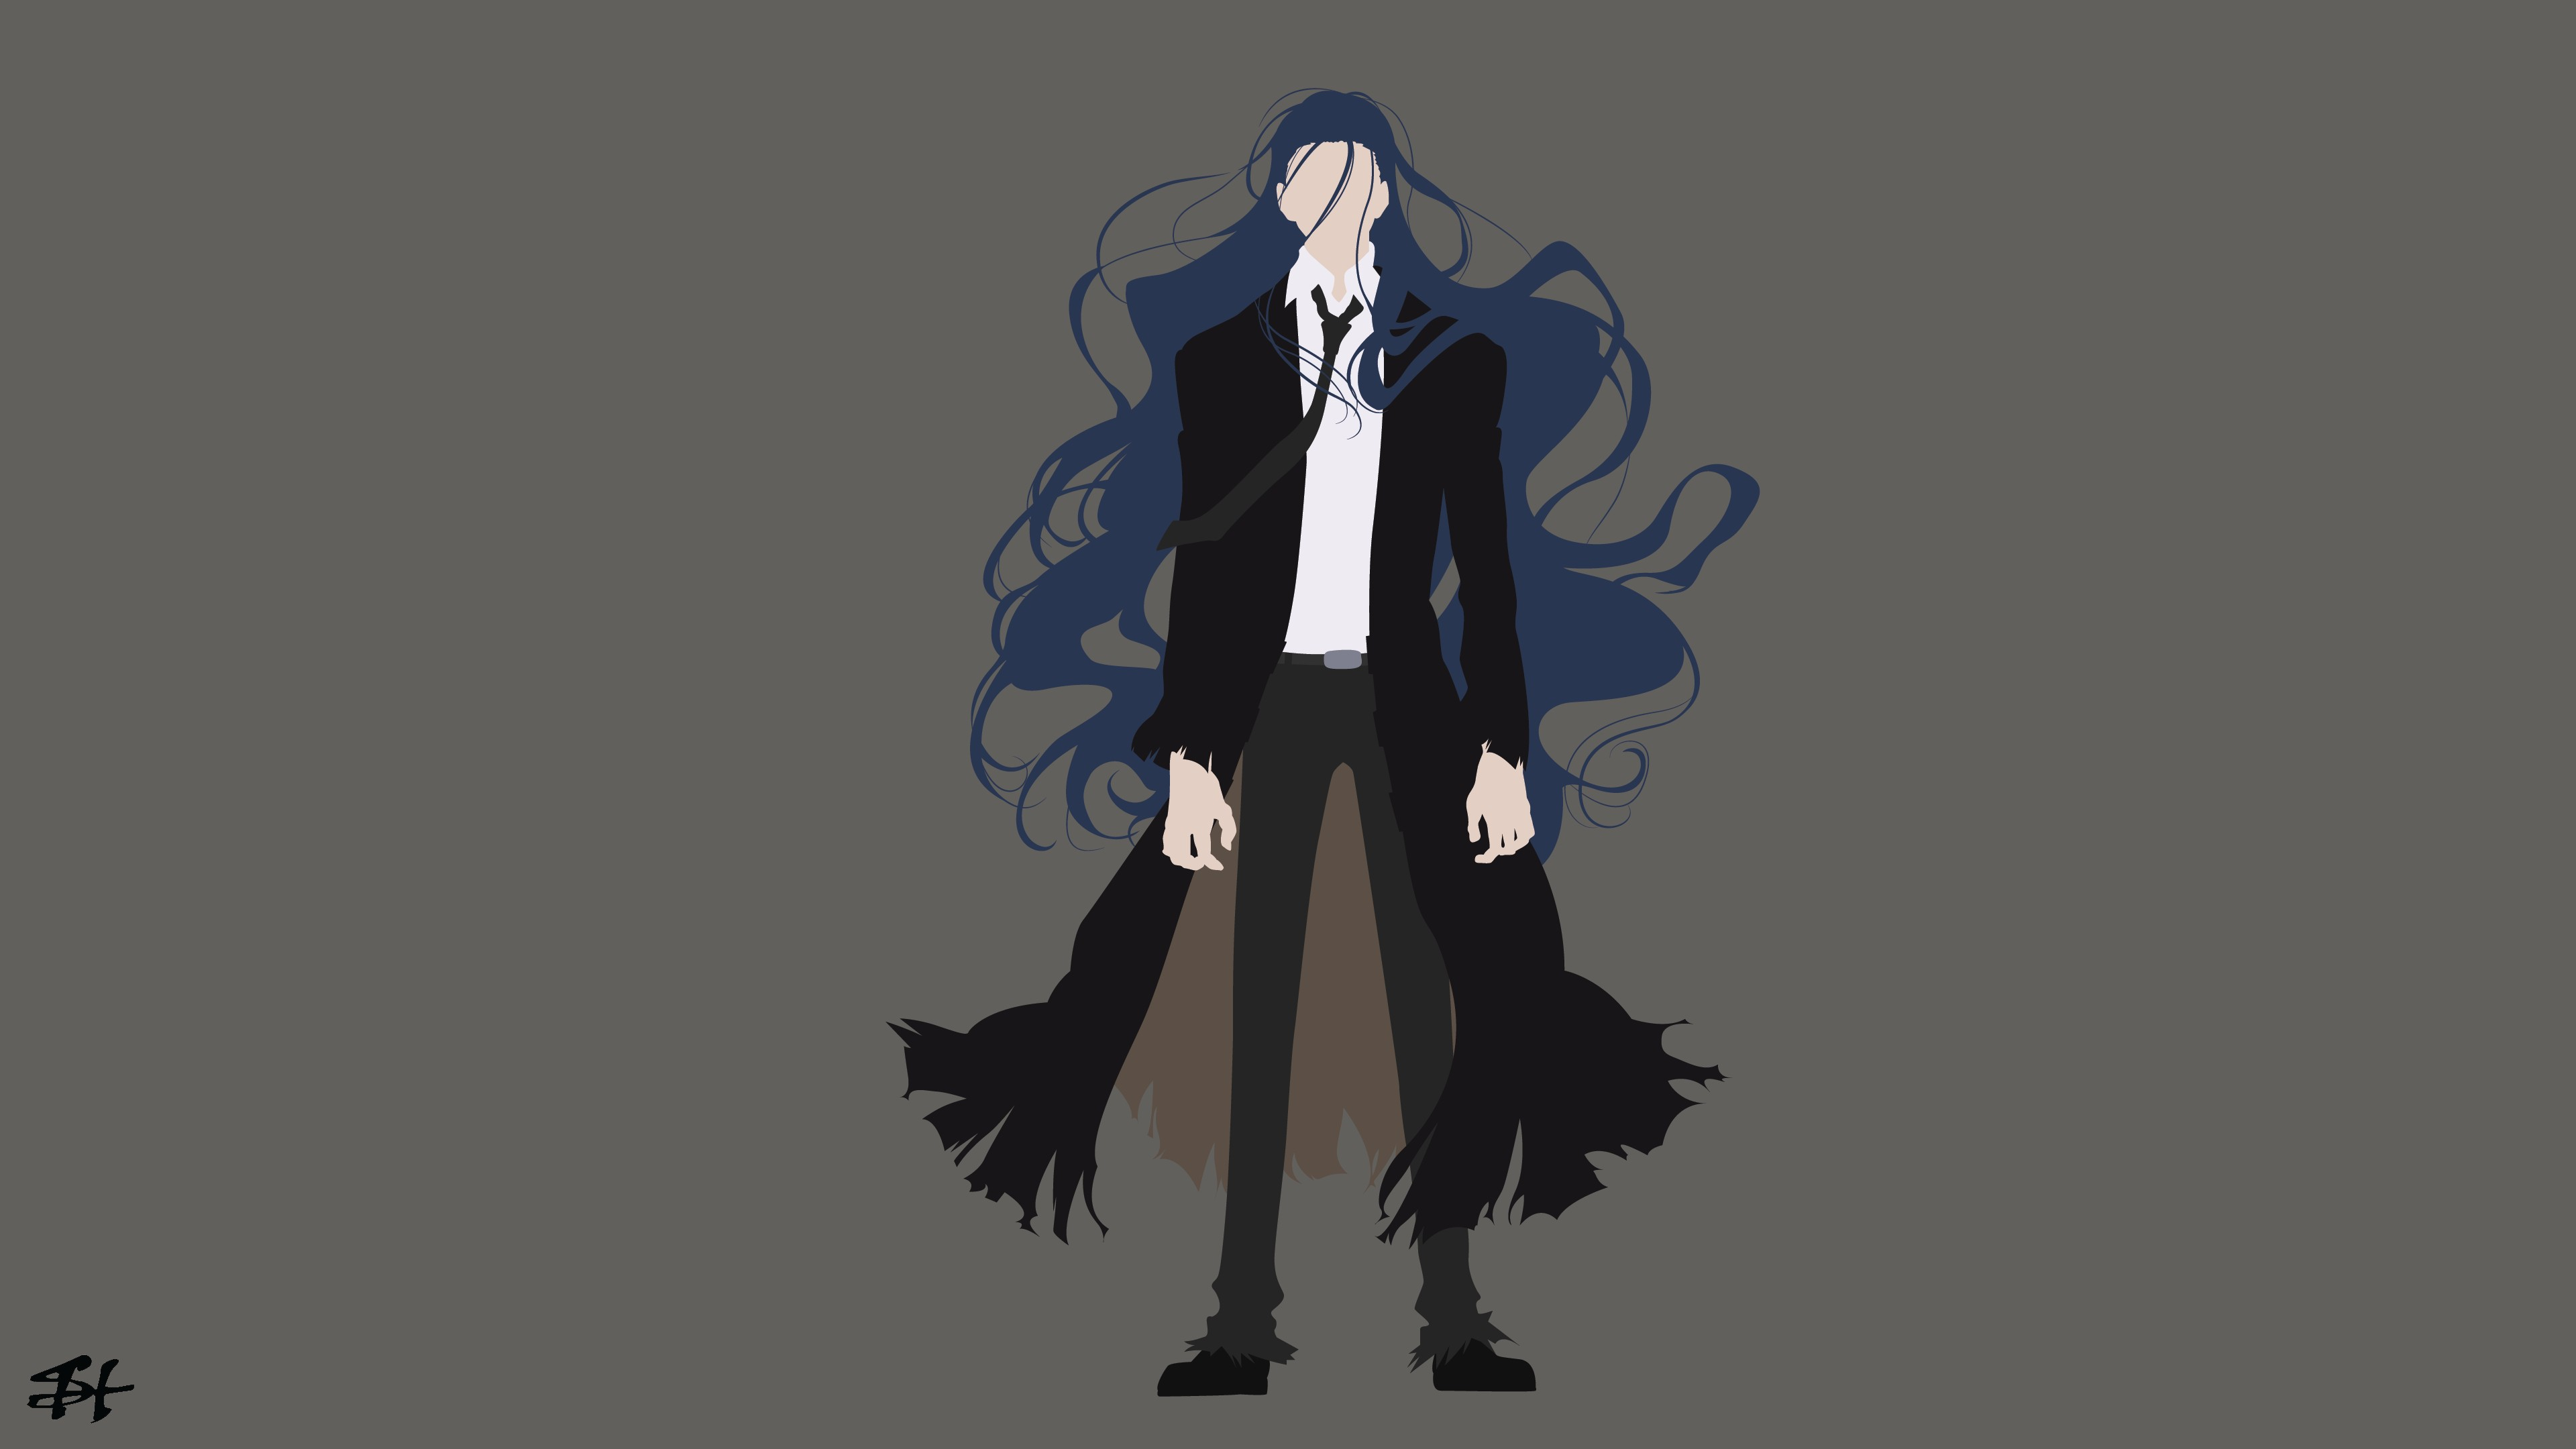 461924 Howard Philips Lovecraft Bungou Stray Dogs